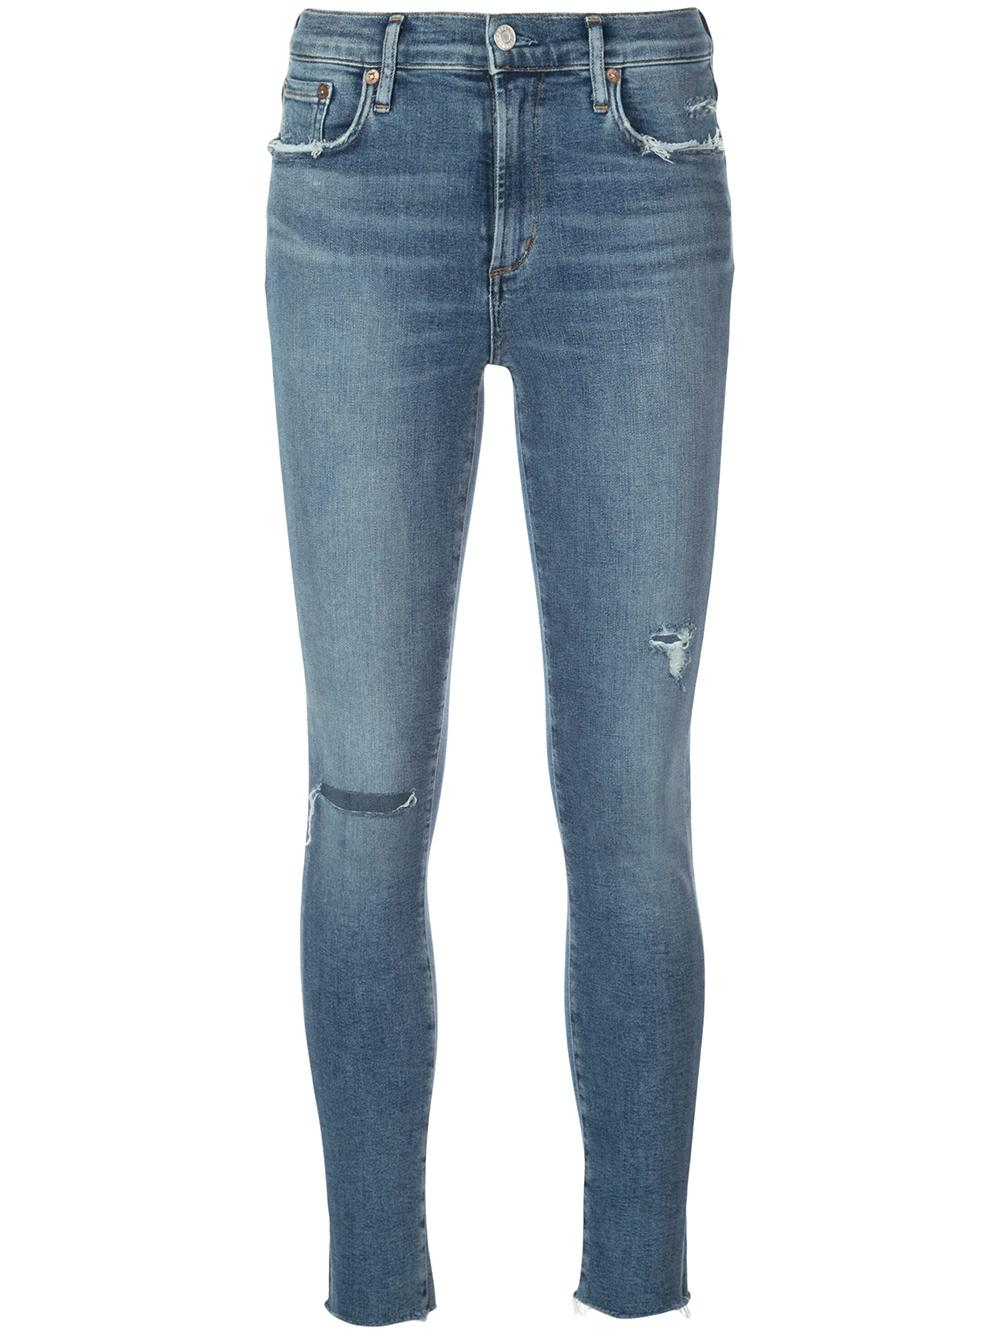 Sophie Updated Ankle Skinny Distribution Item # A123B-1045-F19